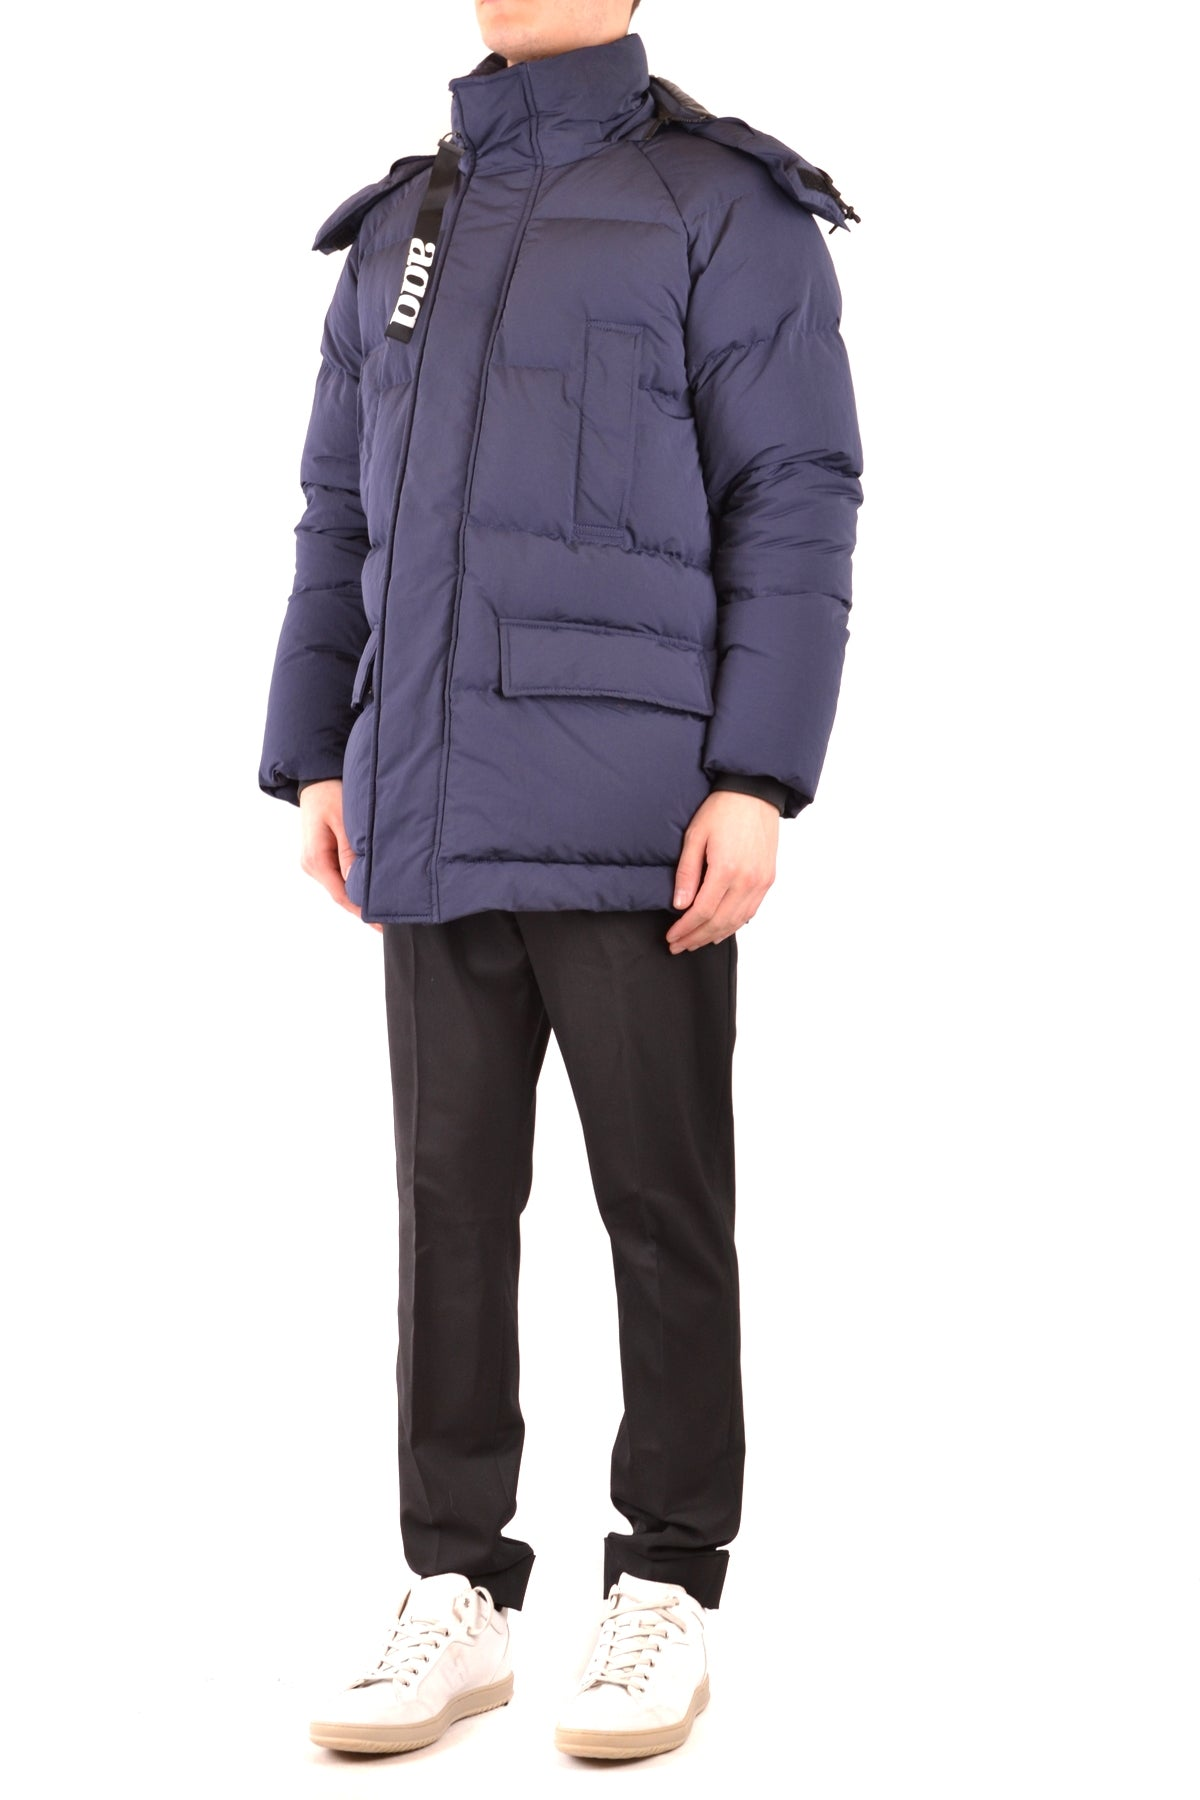 Jacket Add-Men's Fashion - Men's Clothing - Jackets & Coats - Jackets-Product Details Terms: New With LabelClothing Type: BlousonMain Color: BlueSeason: Fall / WinterMade In: ChinaGender: ManSize: IntComposition: Down 100%Year: 2018Manufacturer Part Number: Kam850-Keyomi-Sook